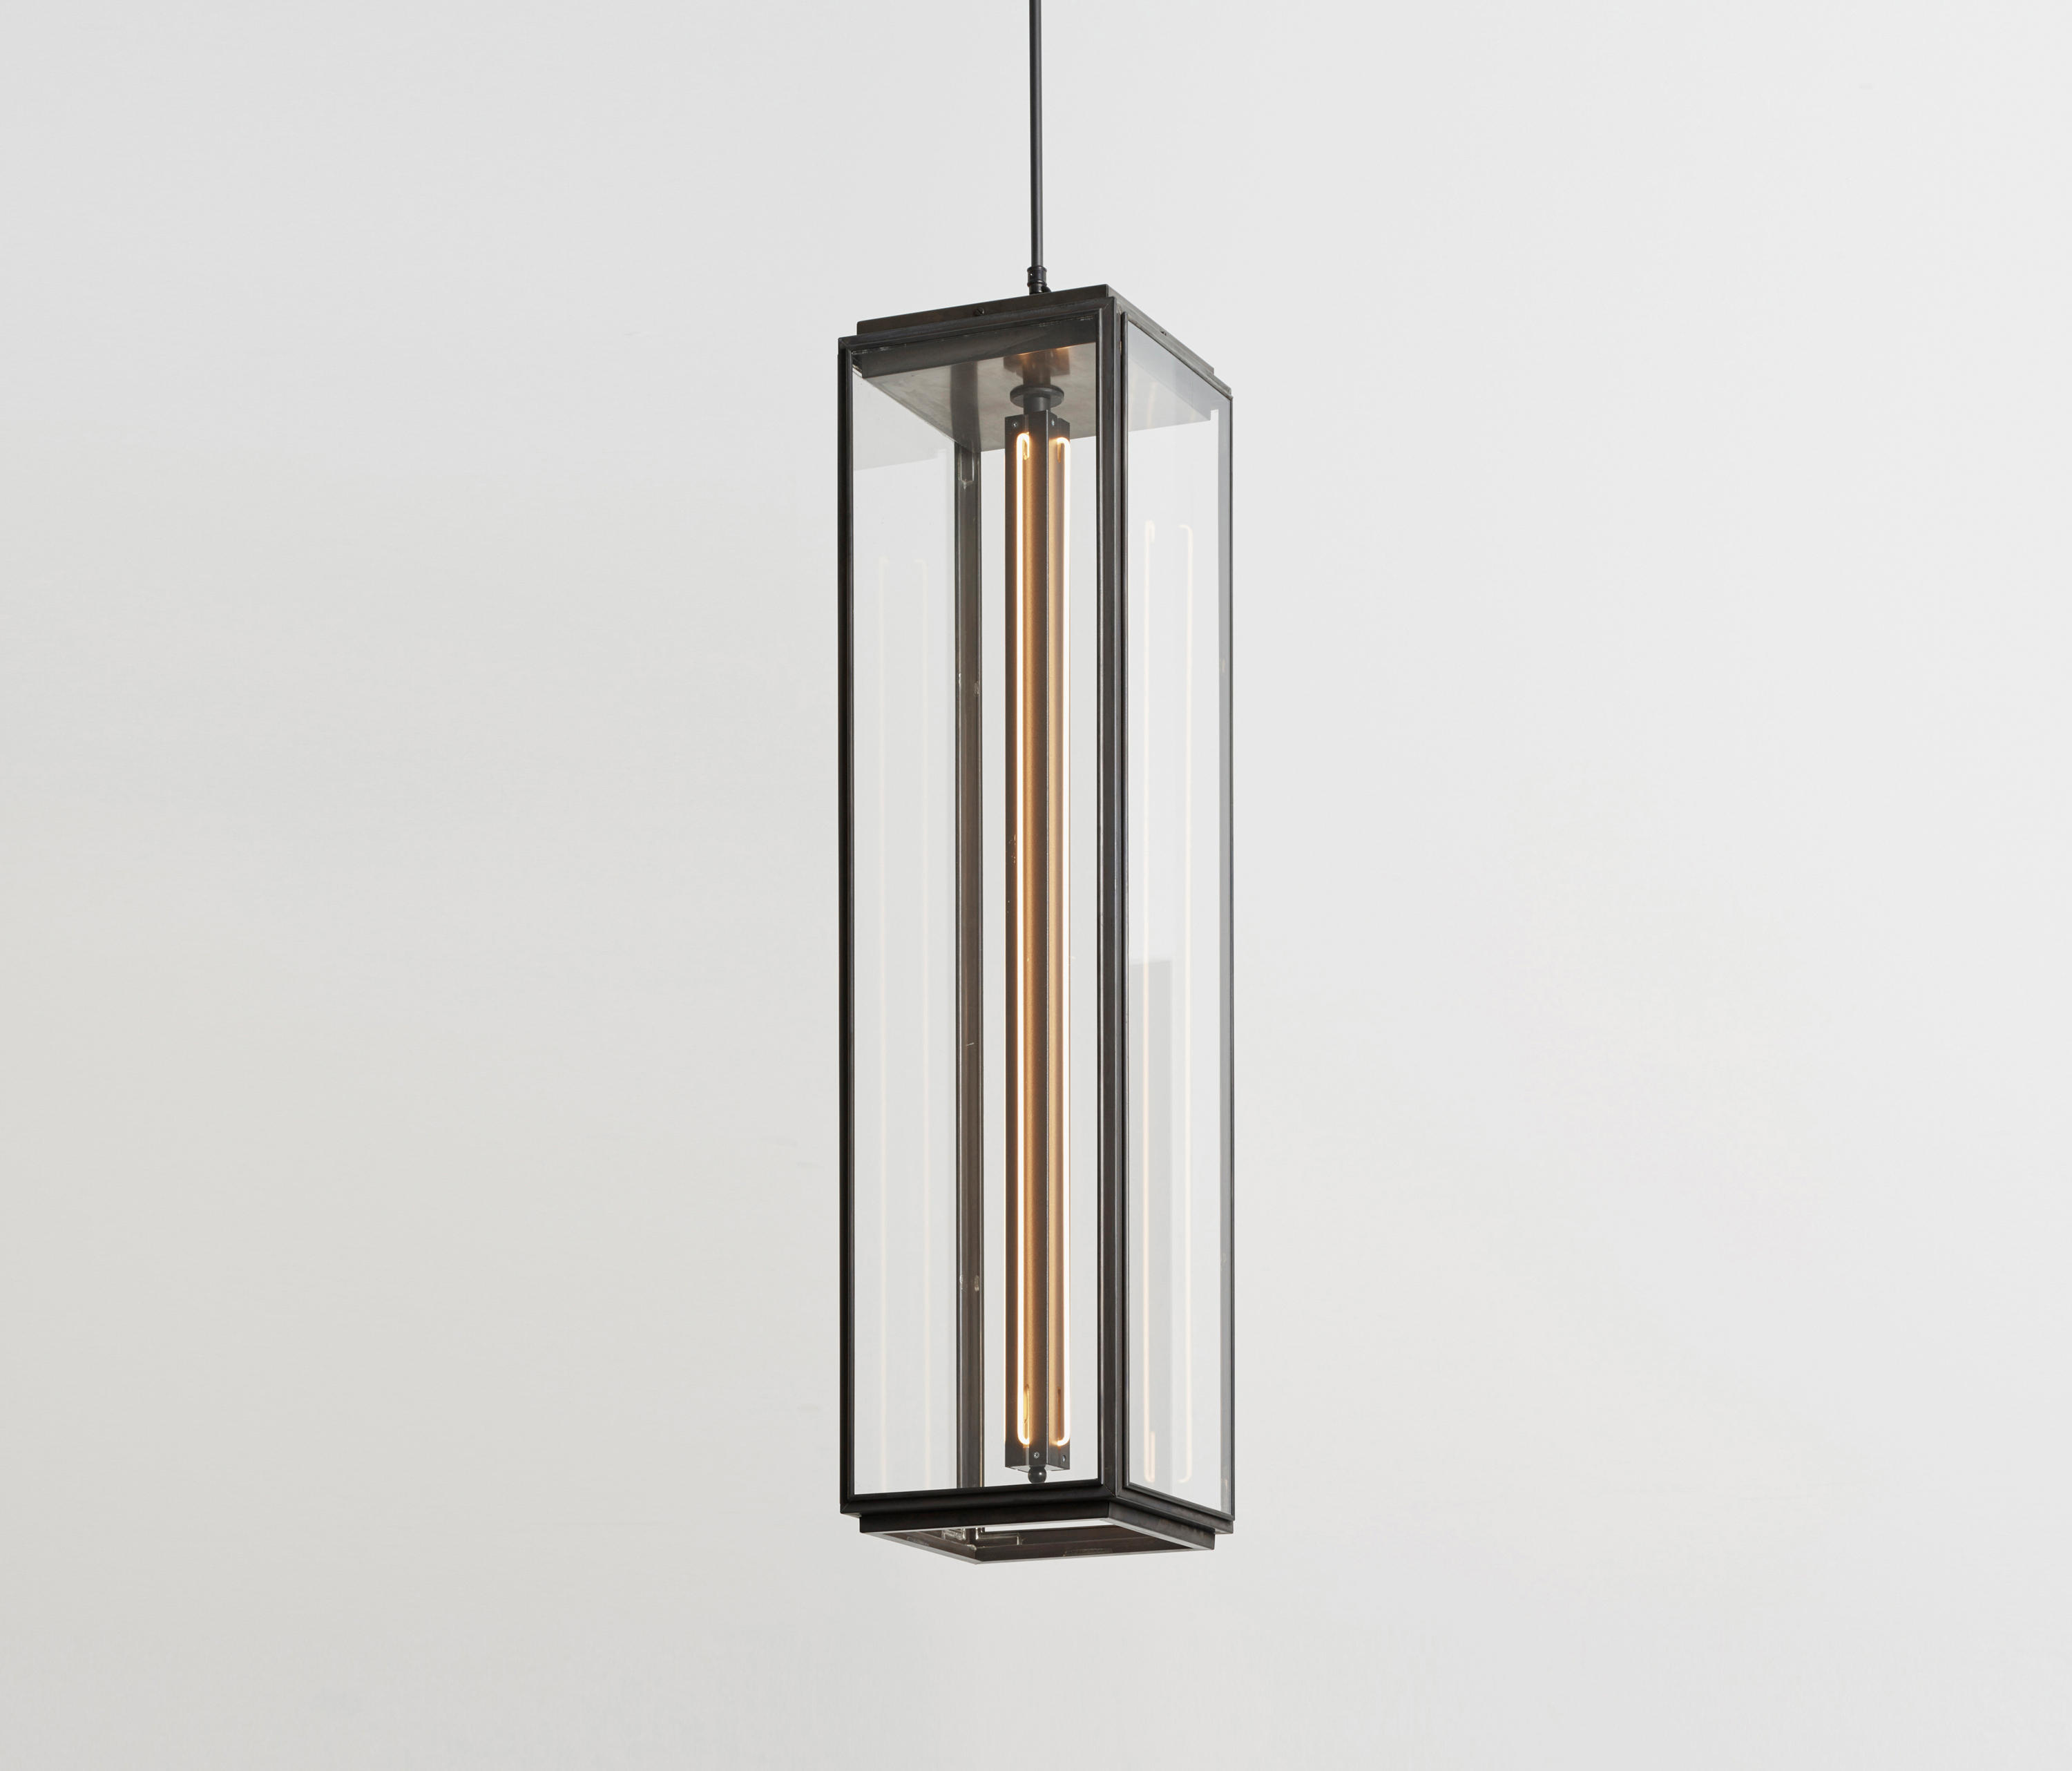 ILFORD XL PENDANT - General Lighting From Tekna